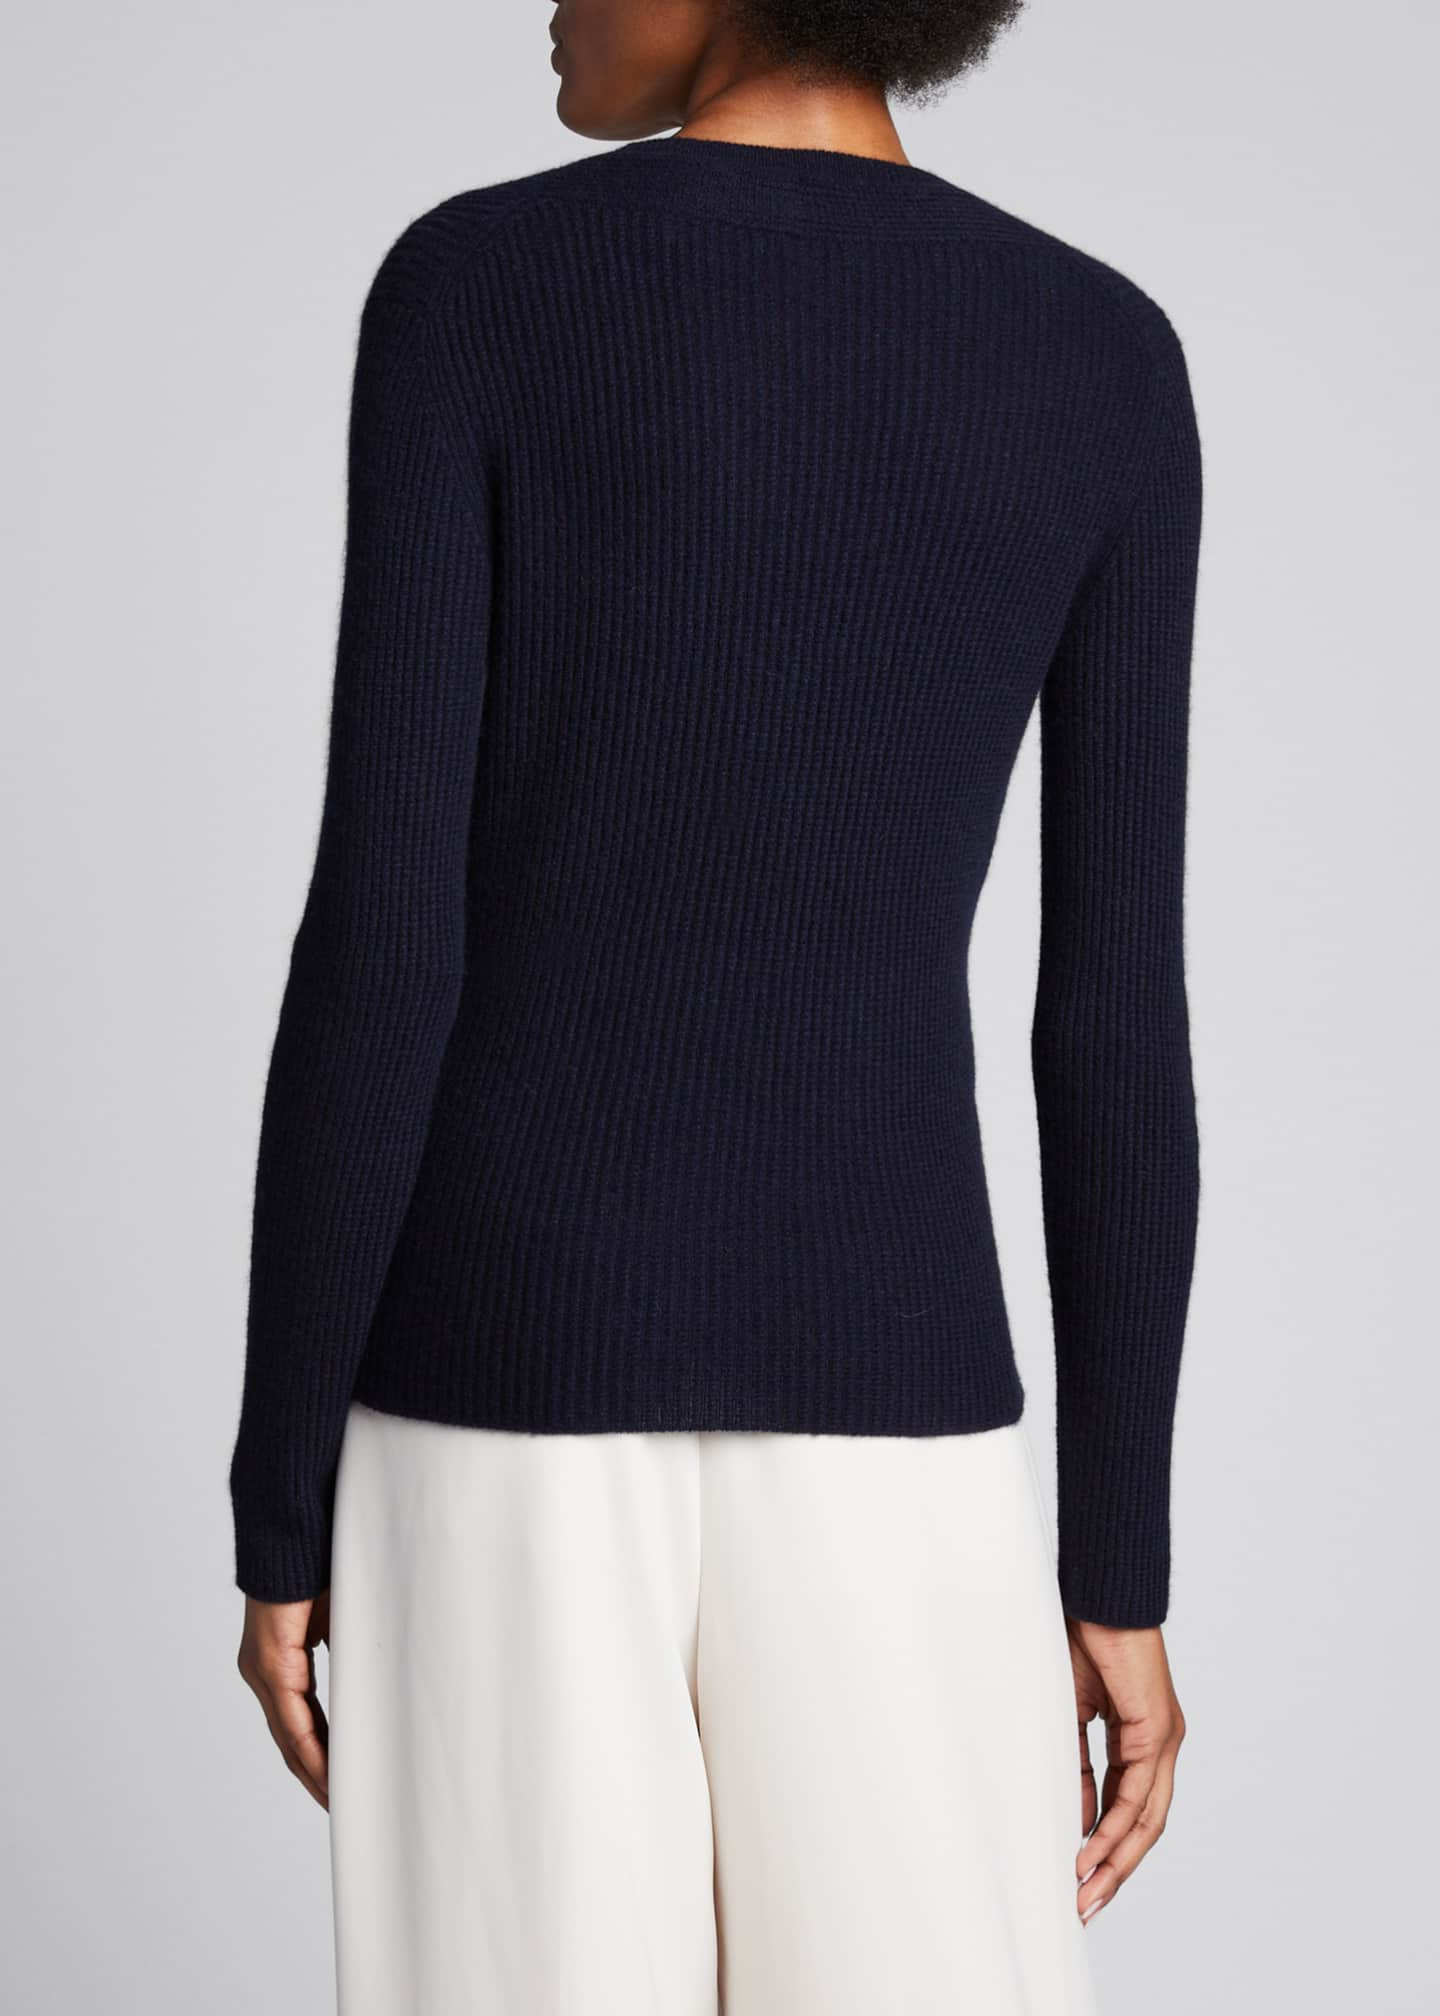 Image 2 of 5: Cashmere V-Neck Mini Cable Knit Sweater